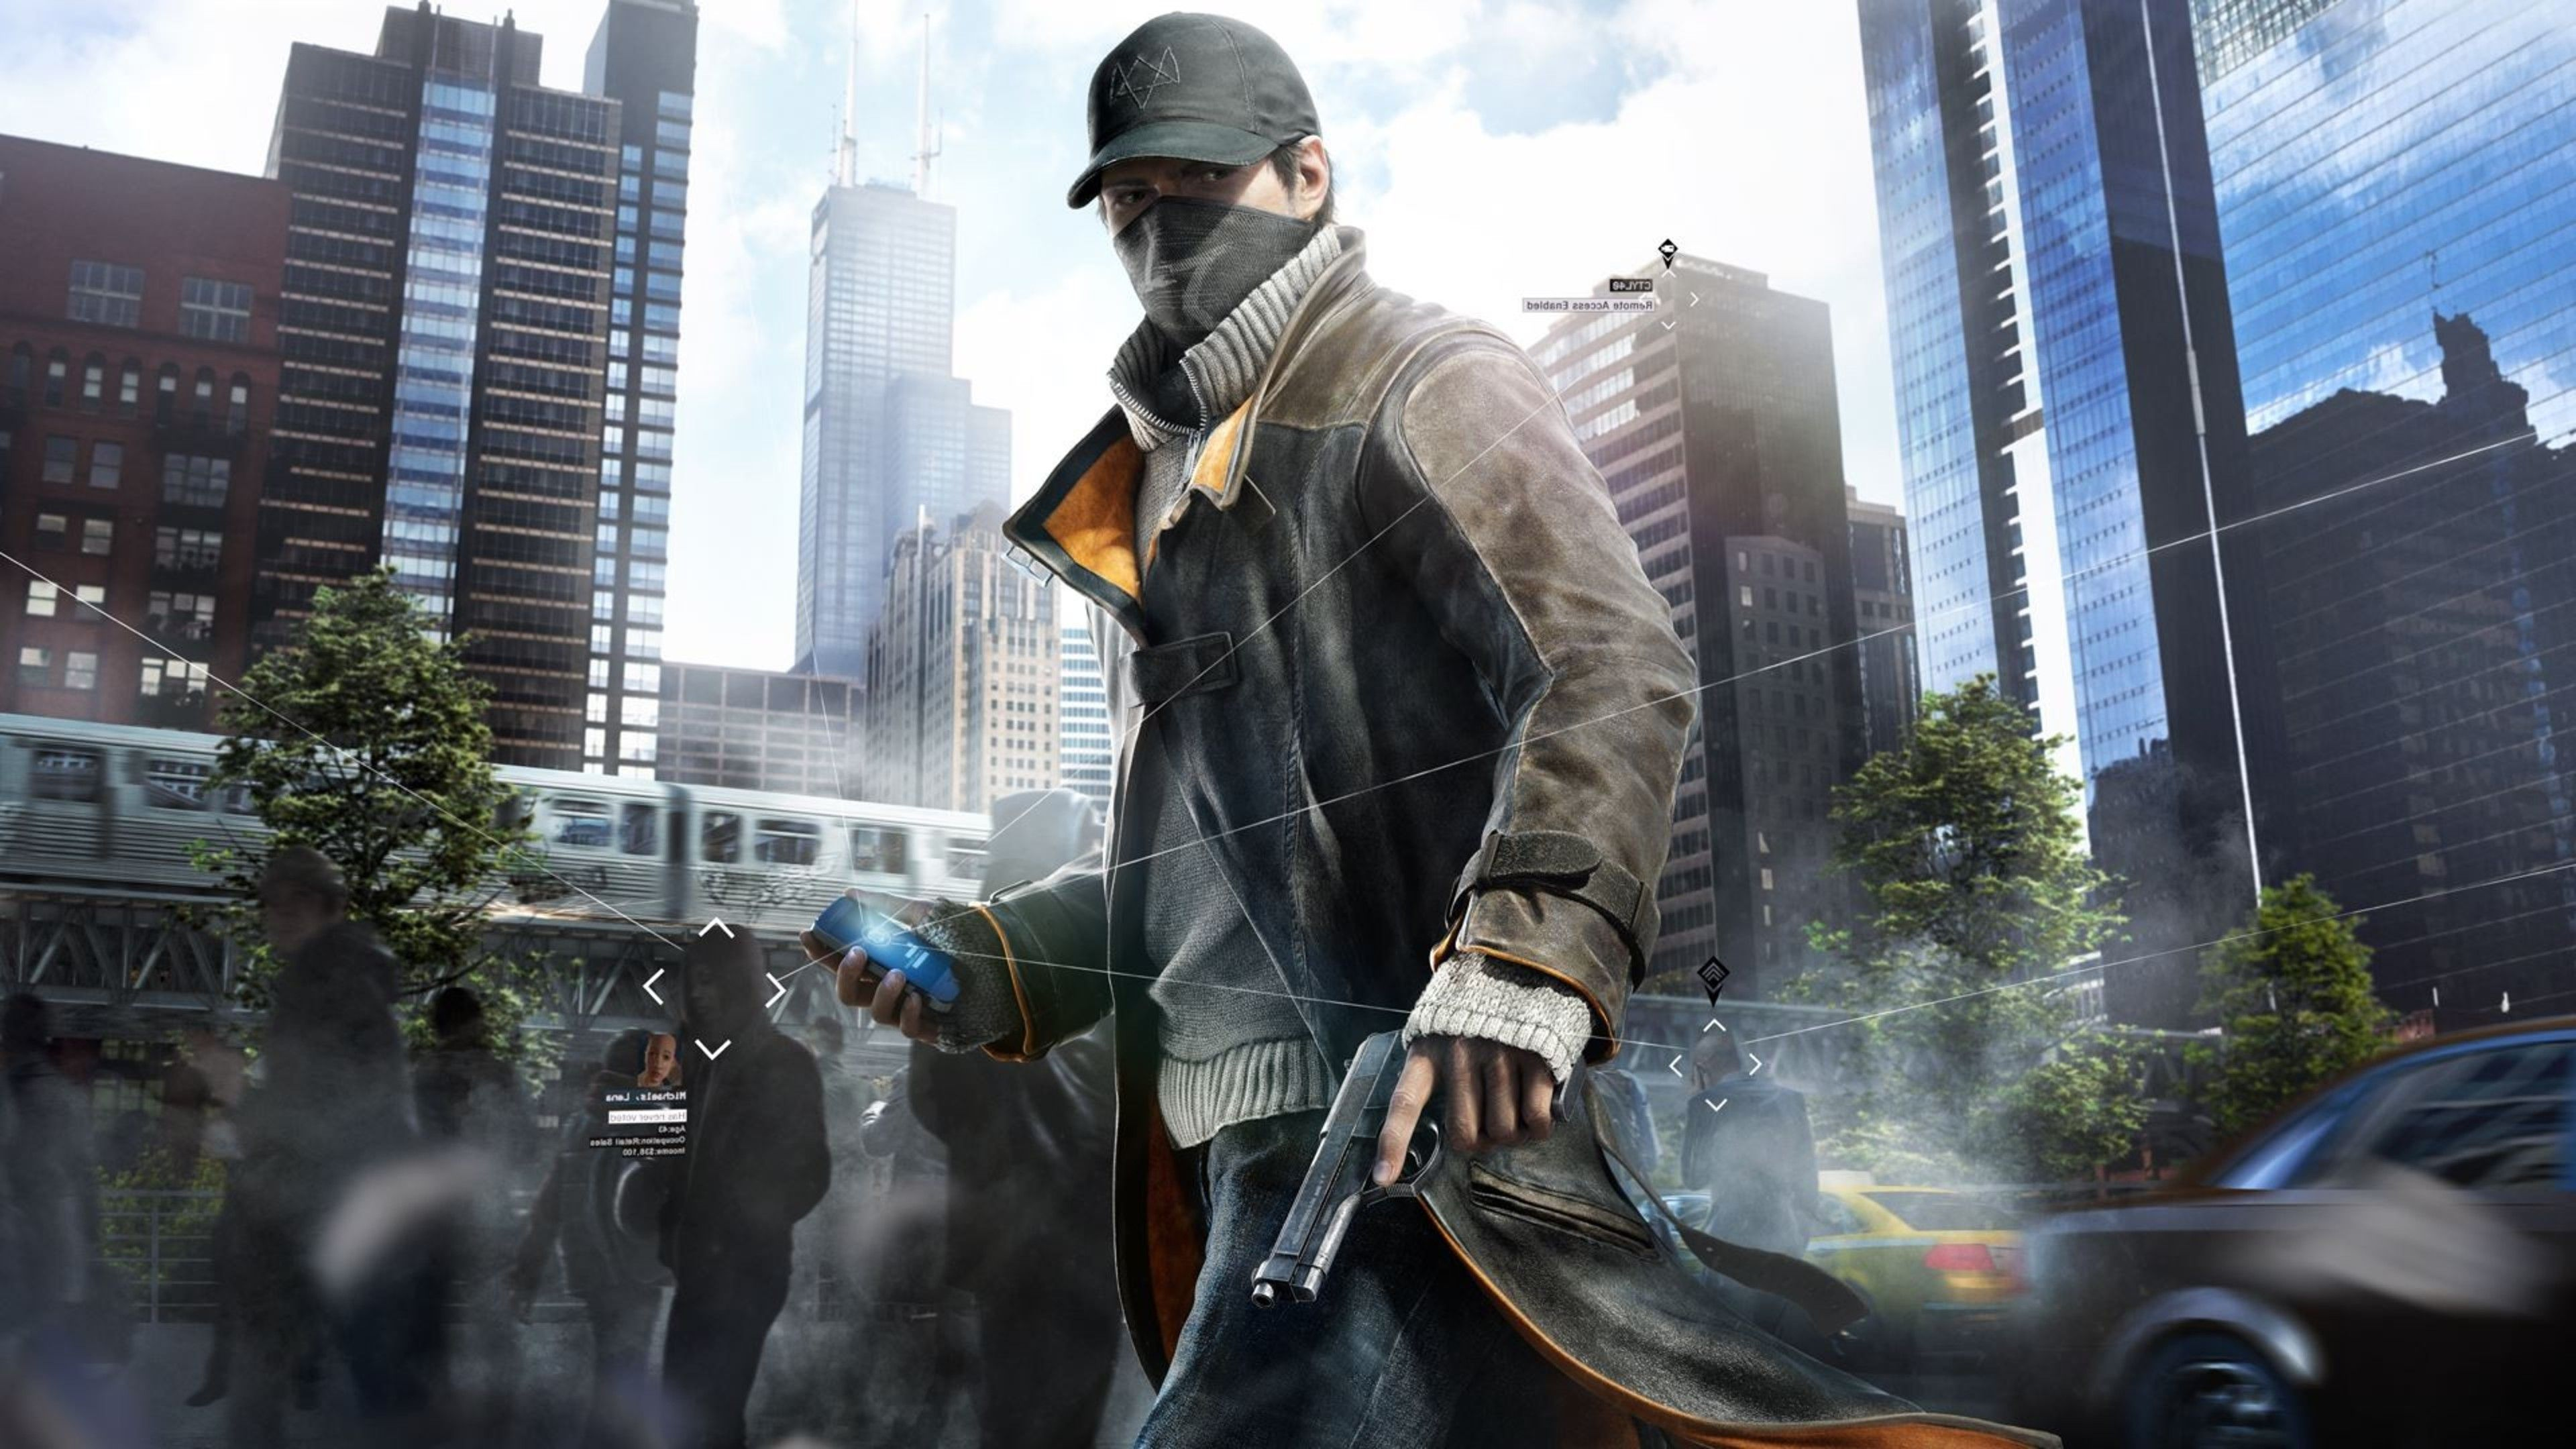 Watch Dogs City Wallpapers Top Free Watch Dogs City Backgrounds